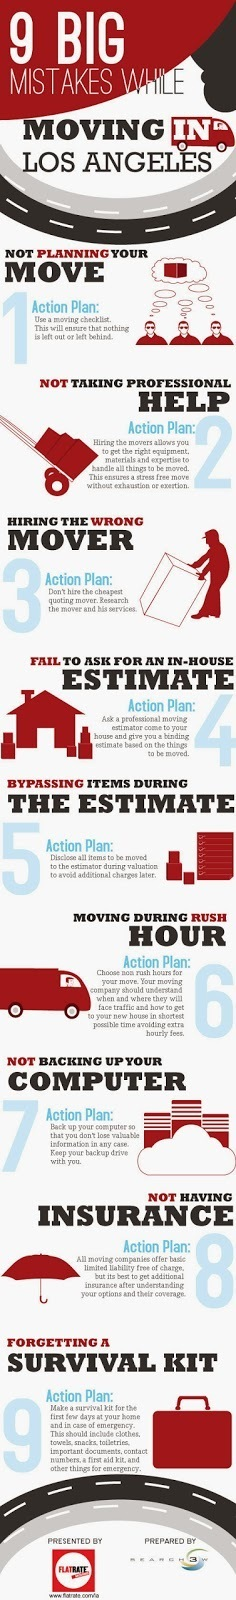 Infographic: 9 Big Mistakes While Moving In Los Angele   Flat Rate   Scoop.it